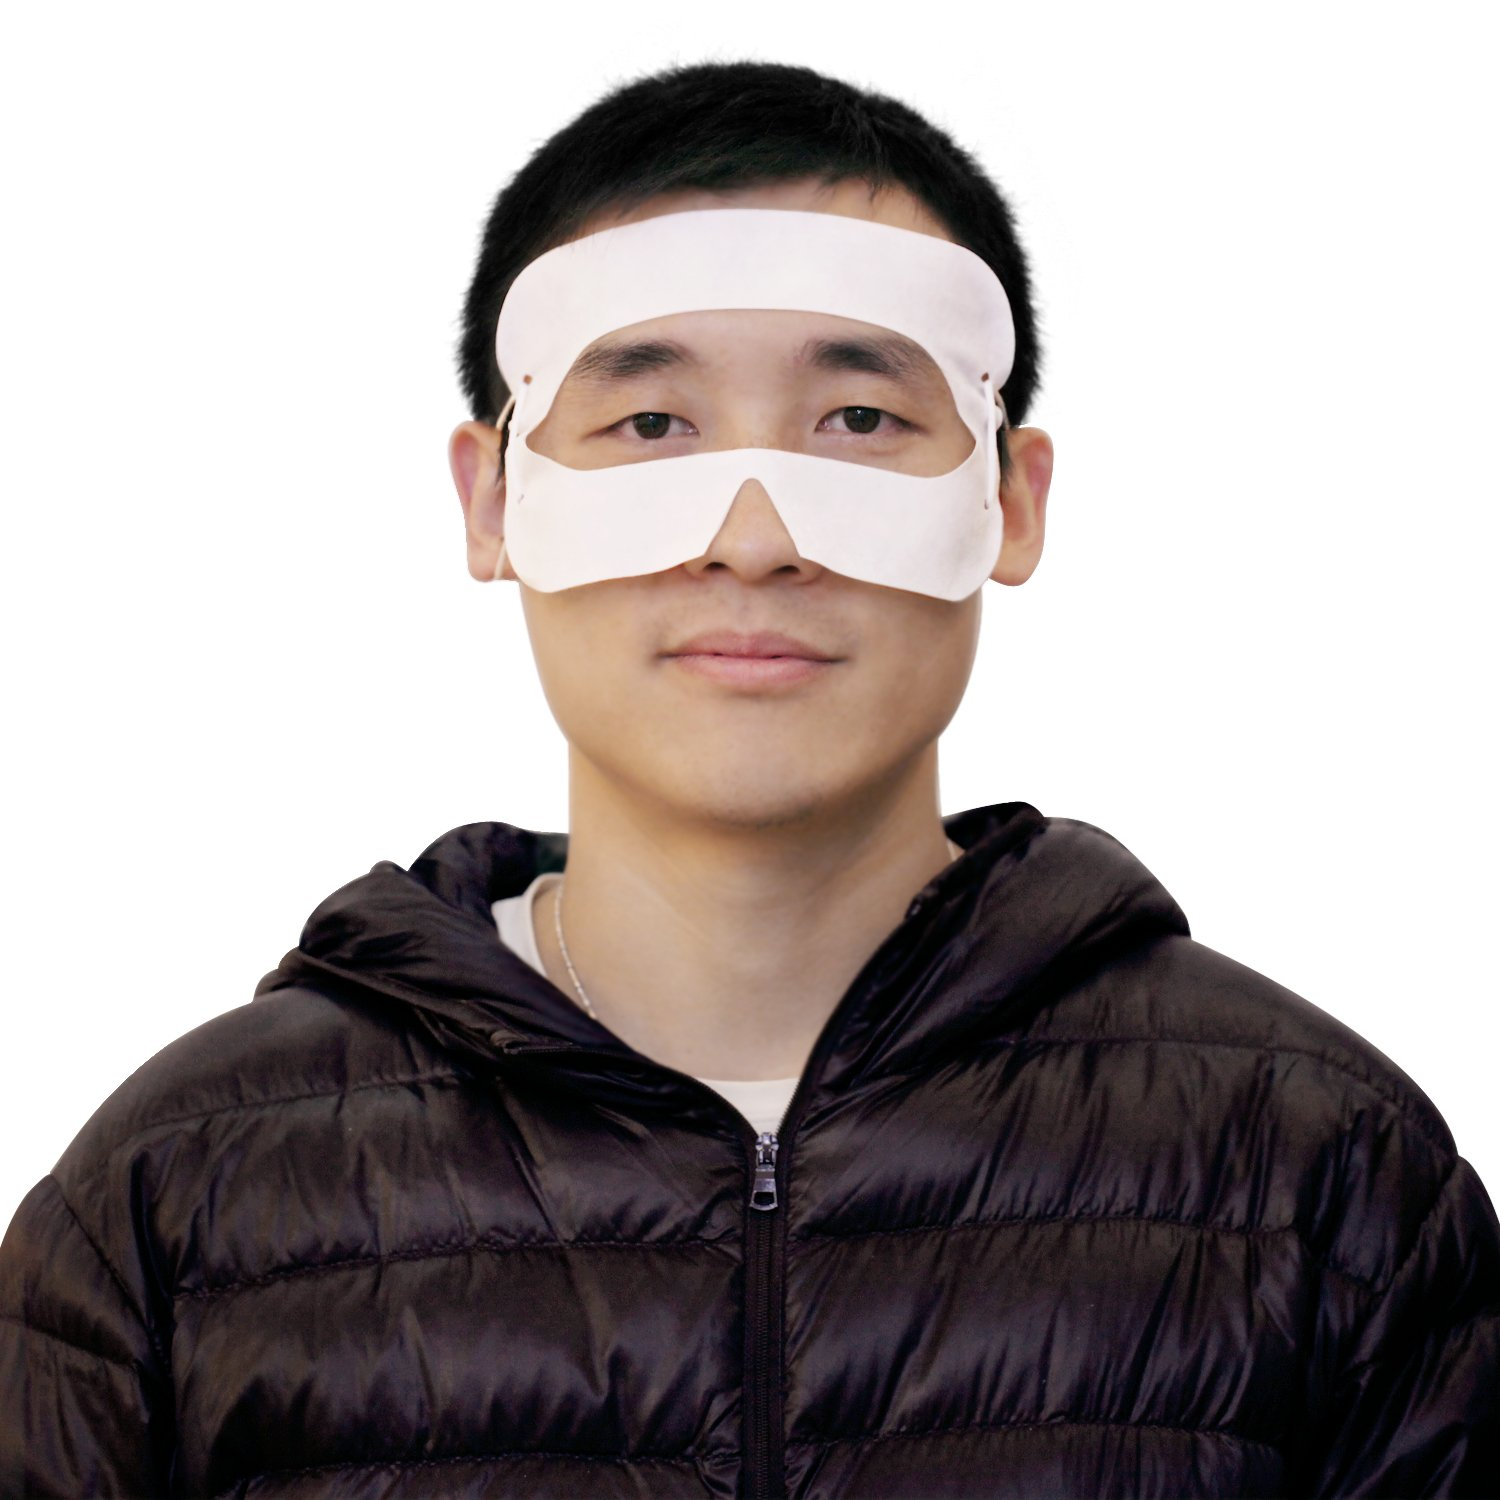 [100 Pcs] LUPHIE Universal Disposable Hygiene Eye Mask Head Mounted Display Sanitary Cover for Gear VR/ Oculus Rift /HTC Vive/ PlayStation VR Headset